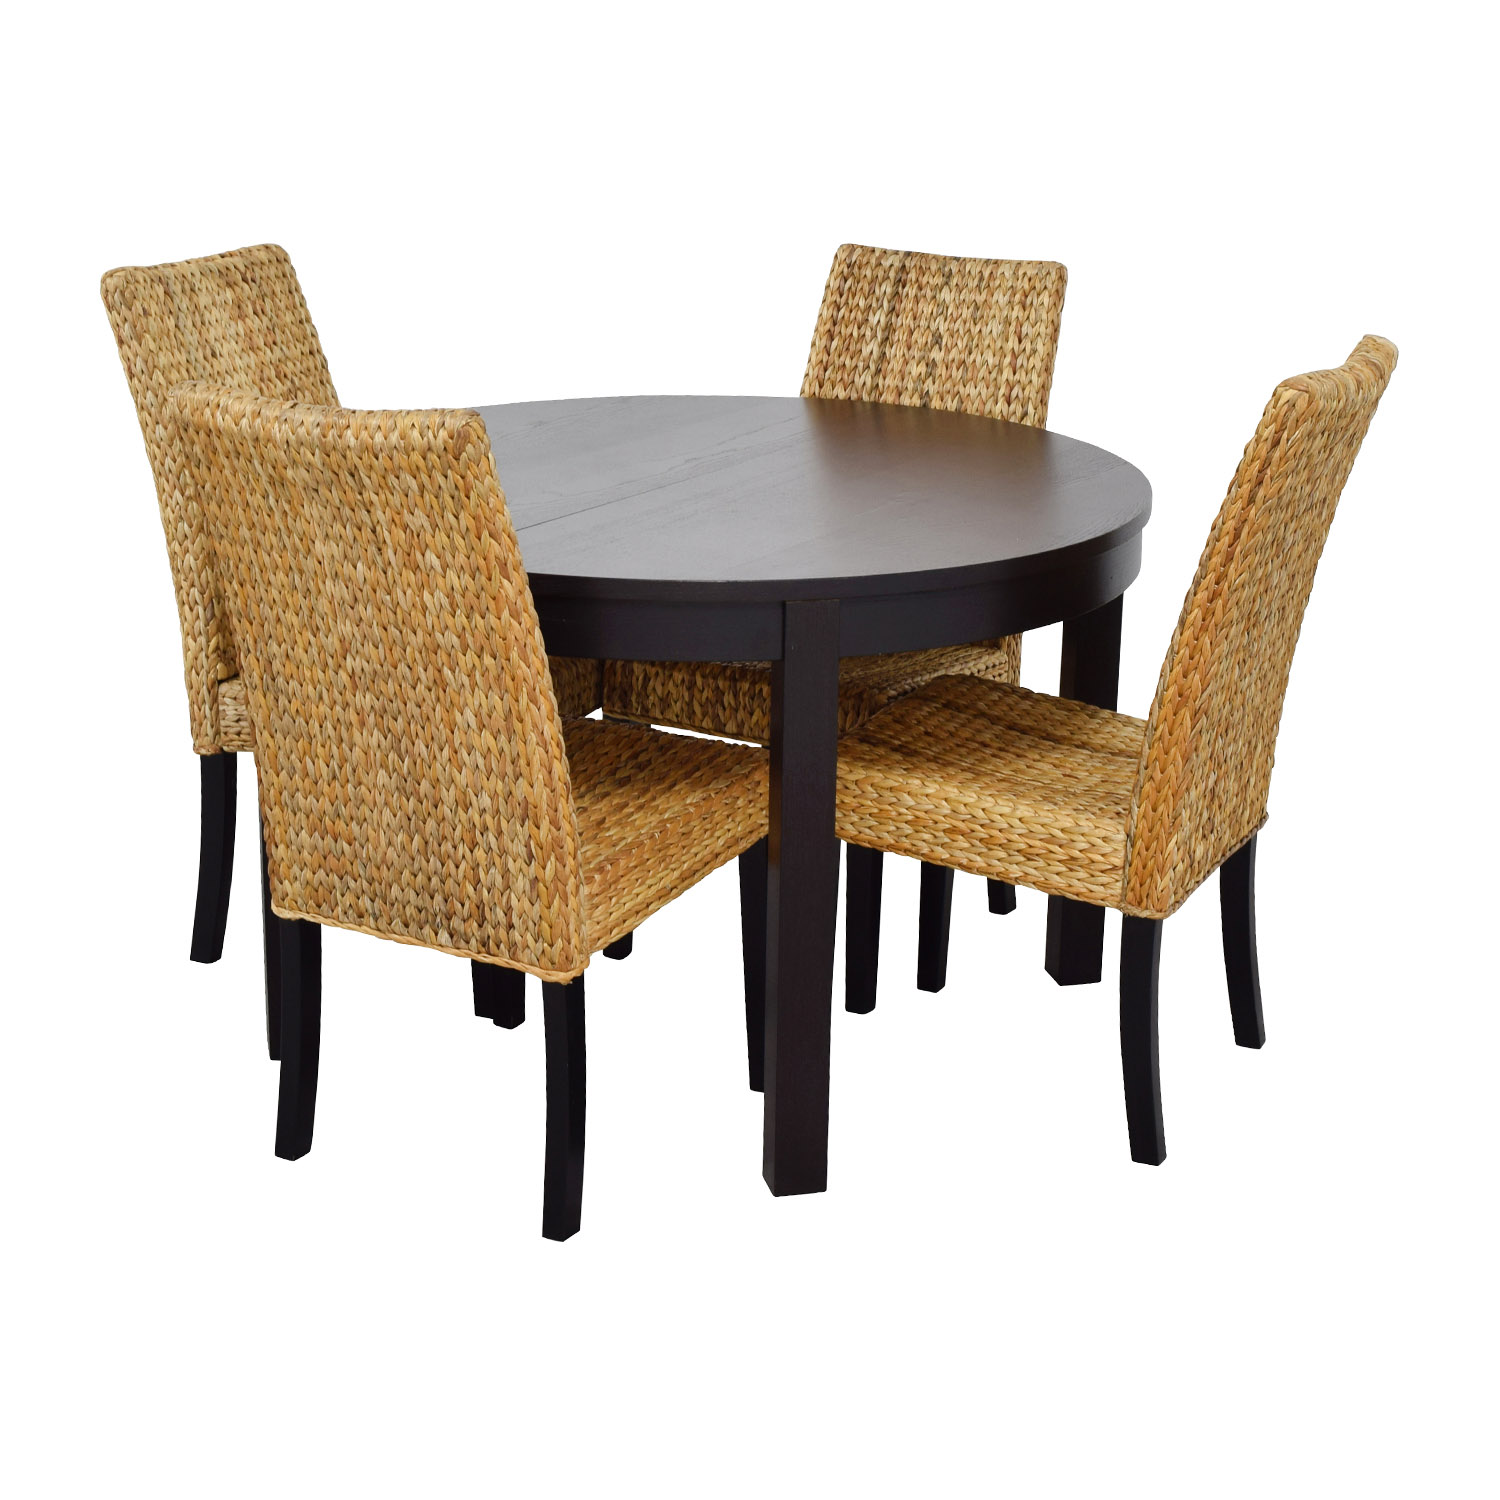 ... Buy Macyu0027s U0026 IKEA Round Black Dining Table Set With Four Chairs ... Part 78